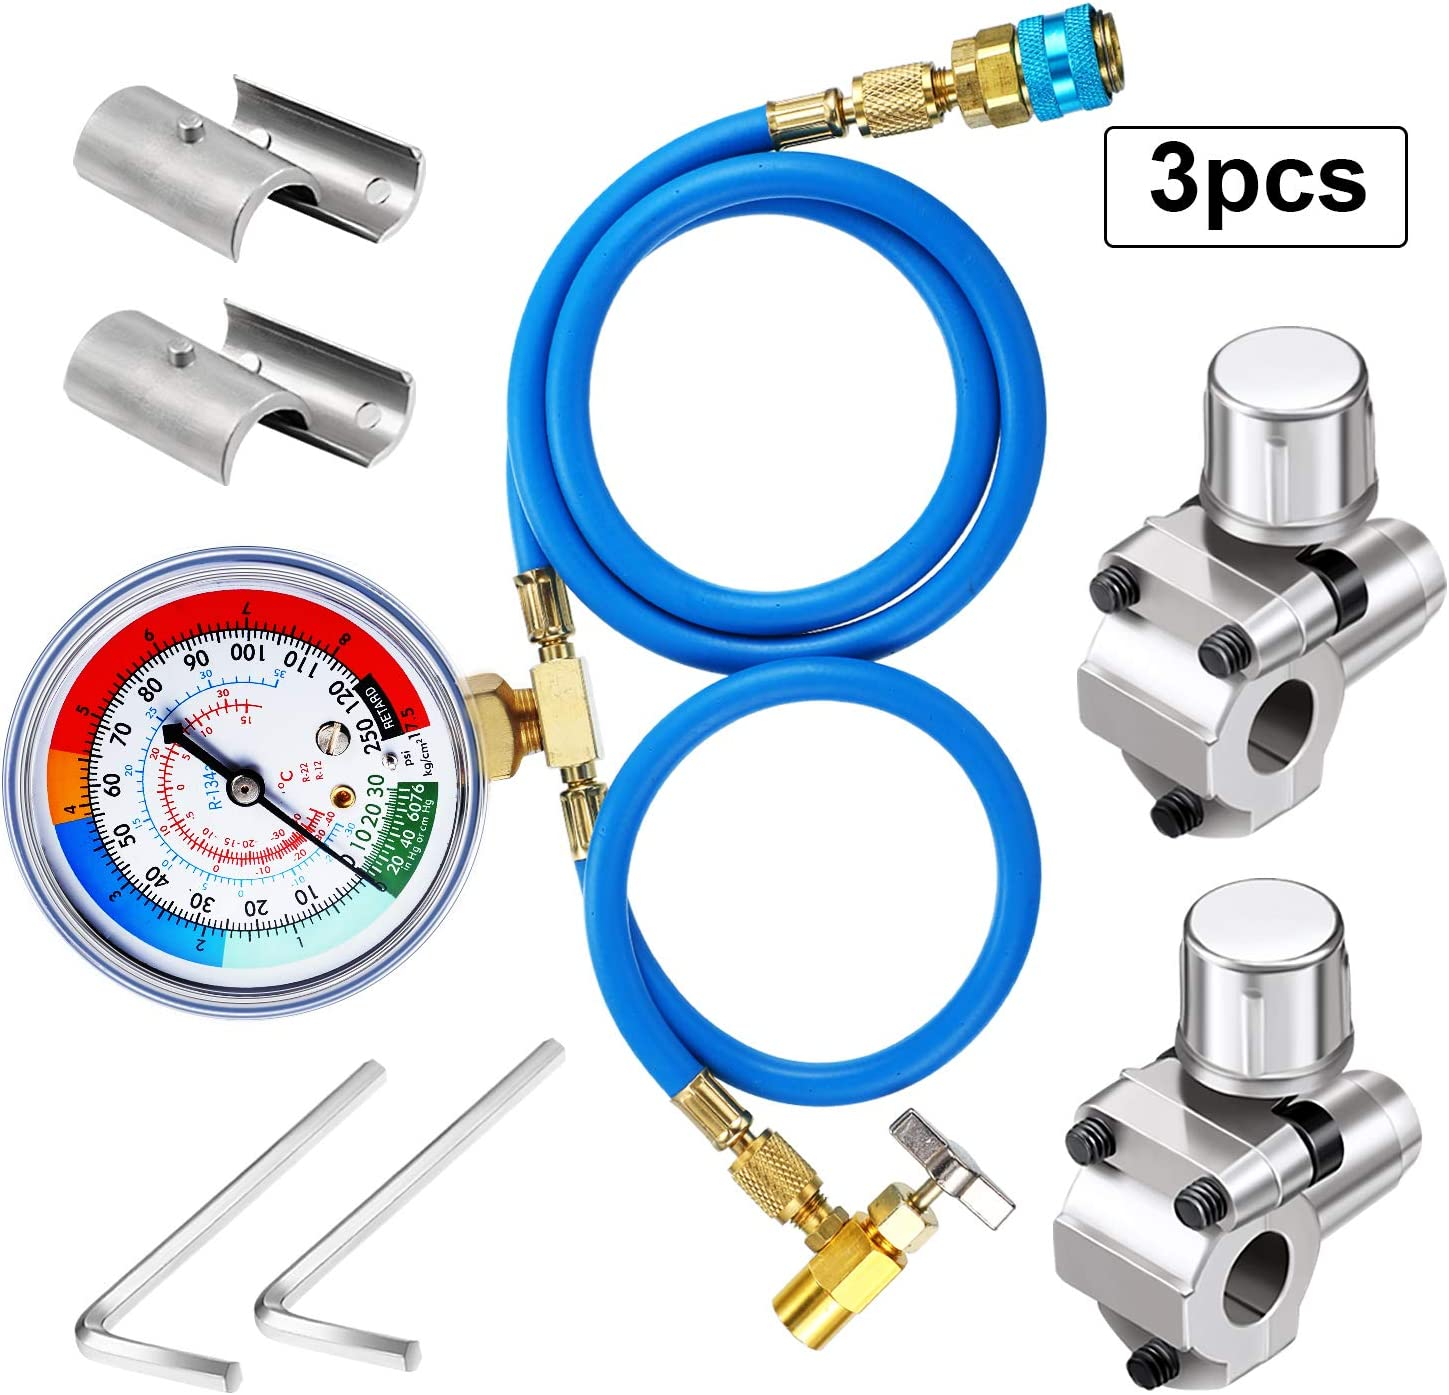 3 Pieces Set A/C R134A Refrigerant Charging Hose R134A Charging Hose Quick Couple, 1/2 in Male 1/4 in SAE Female Can Tap Valve, BPV31 Bullet Piercing Tap Valve Compatible with GPV14 GPV31 GPV38 GPV56